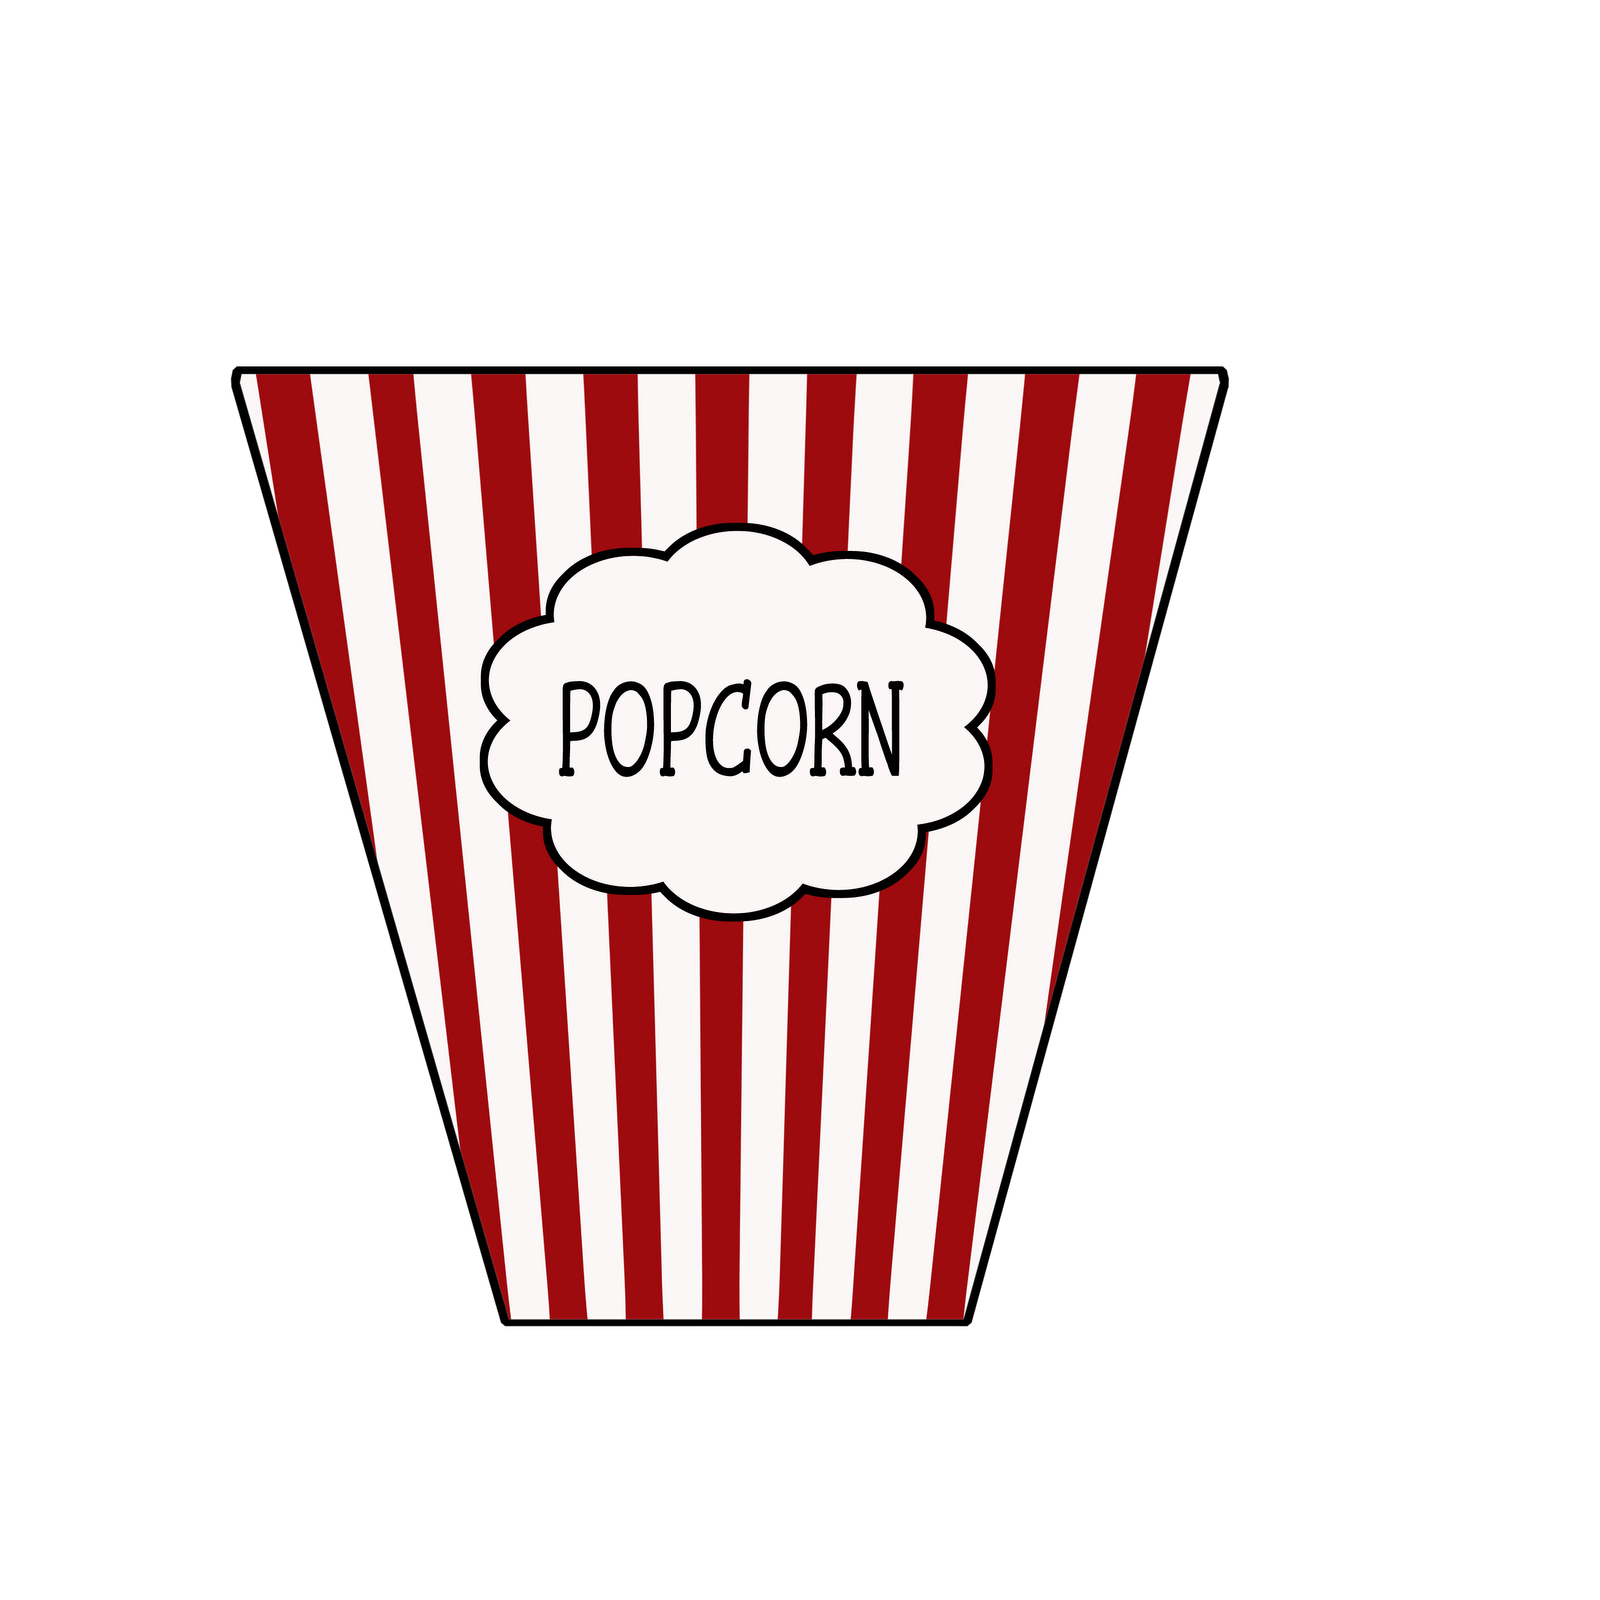 1600x1600 Popcorn Border Writing Paper Free Clipart Images Image